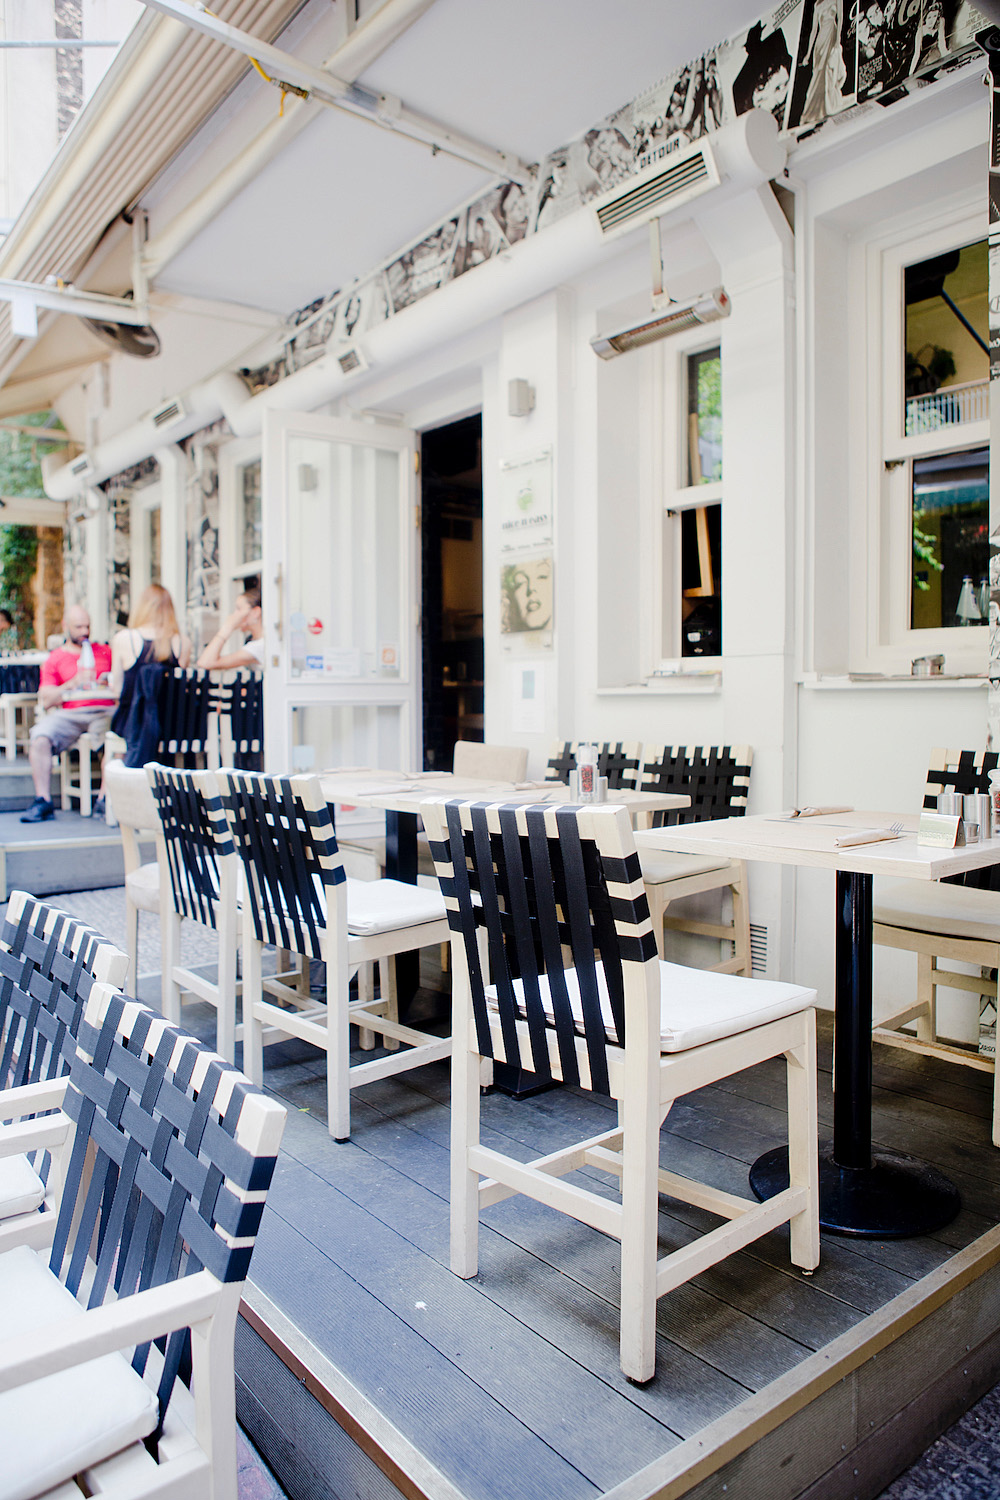 Athens Food Guide, where to eat in Athens, Restaurant-Tipps für Athen   www.thegoldenbun.com